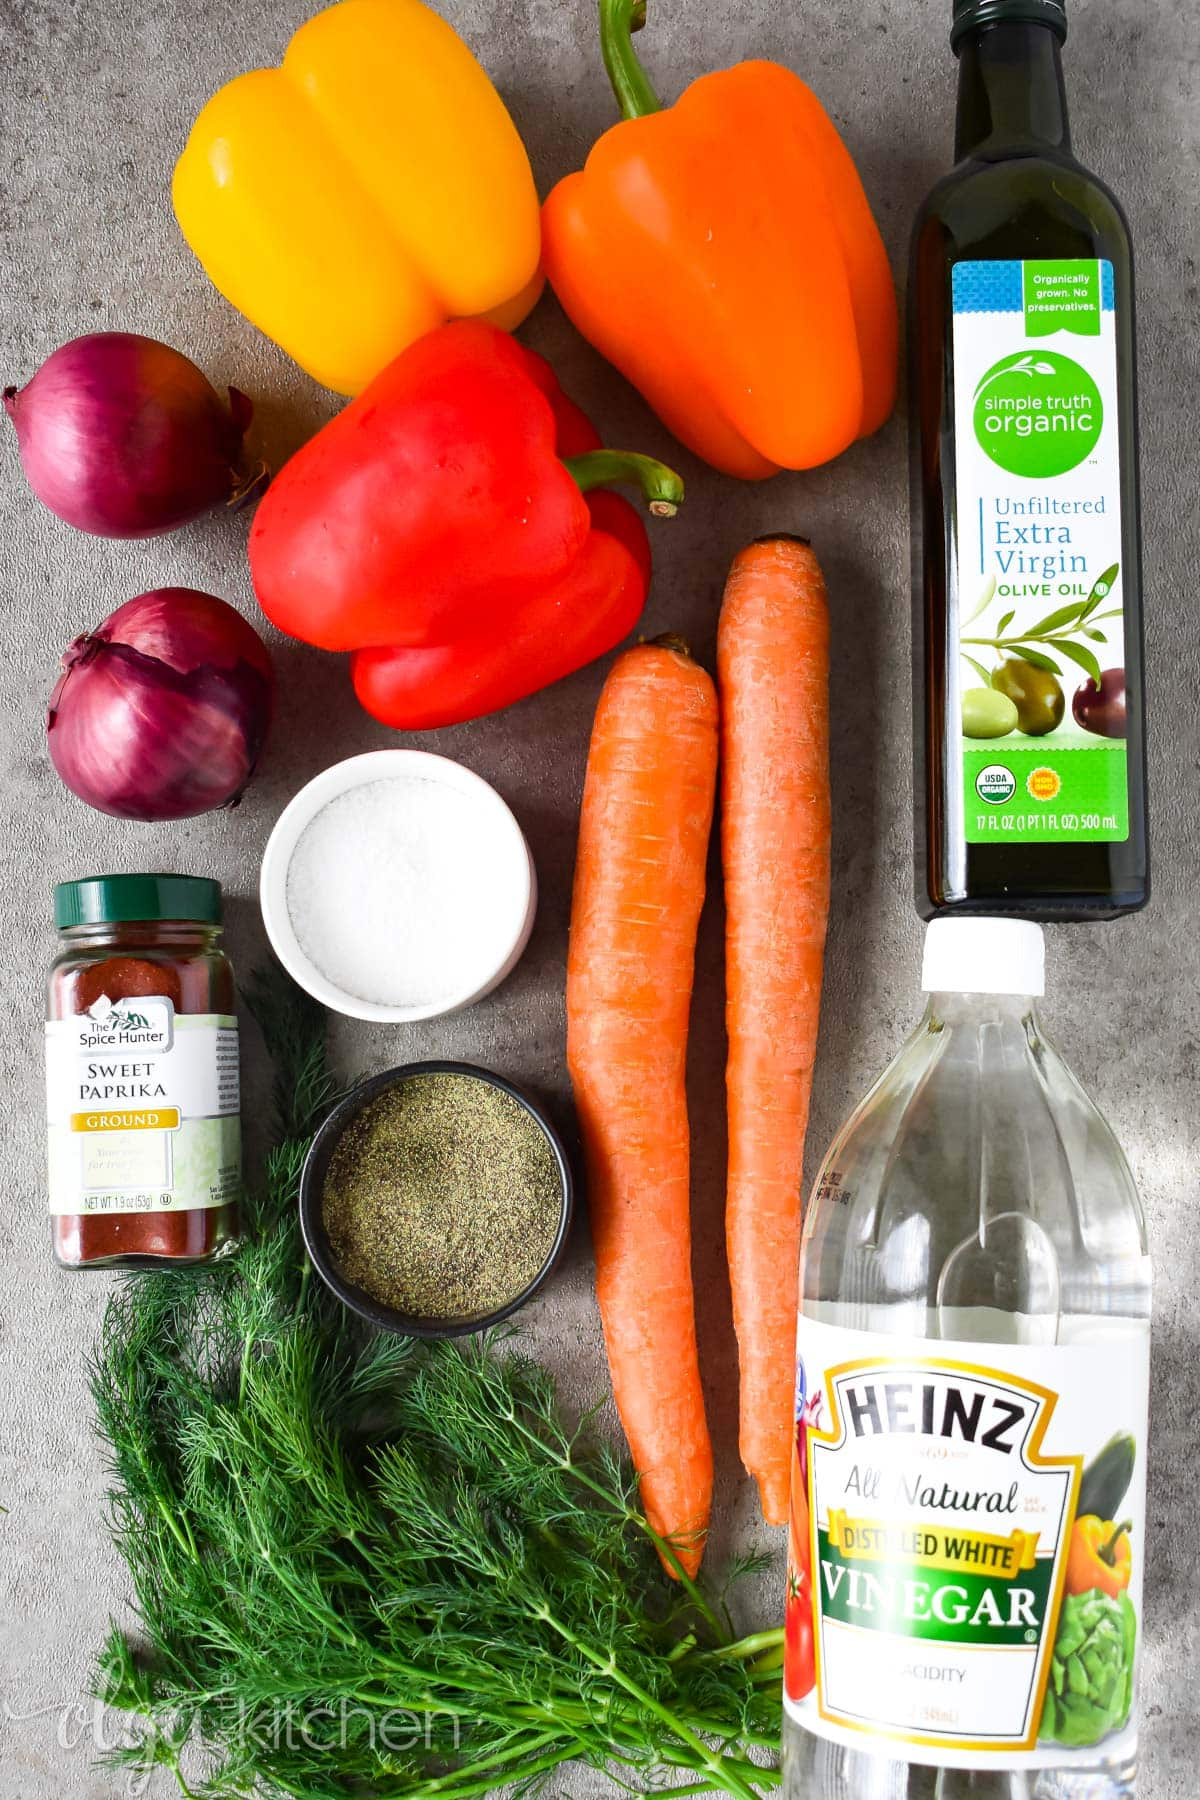 Ingredients for roasted pepper salad recipe.